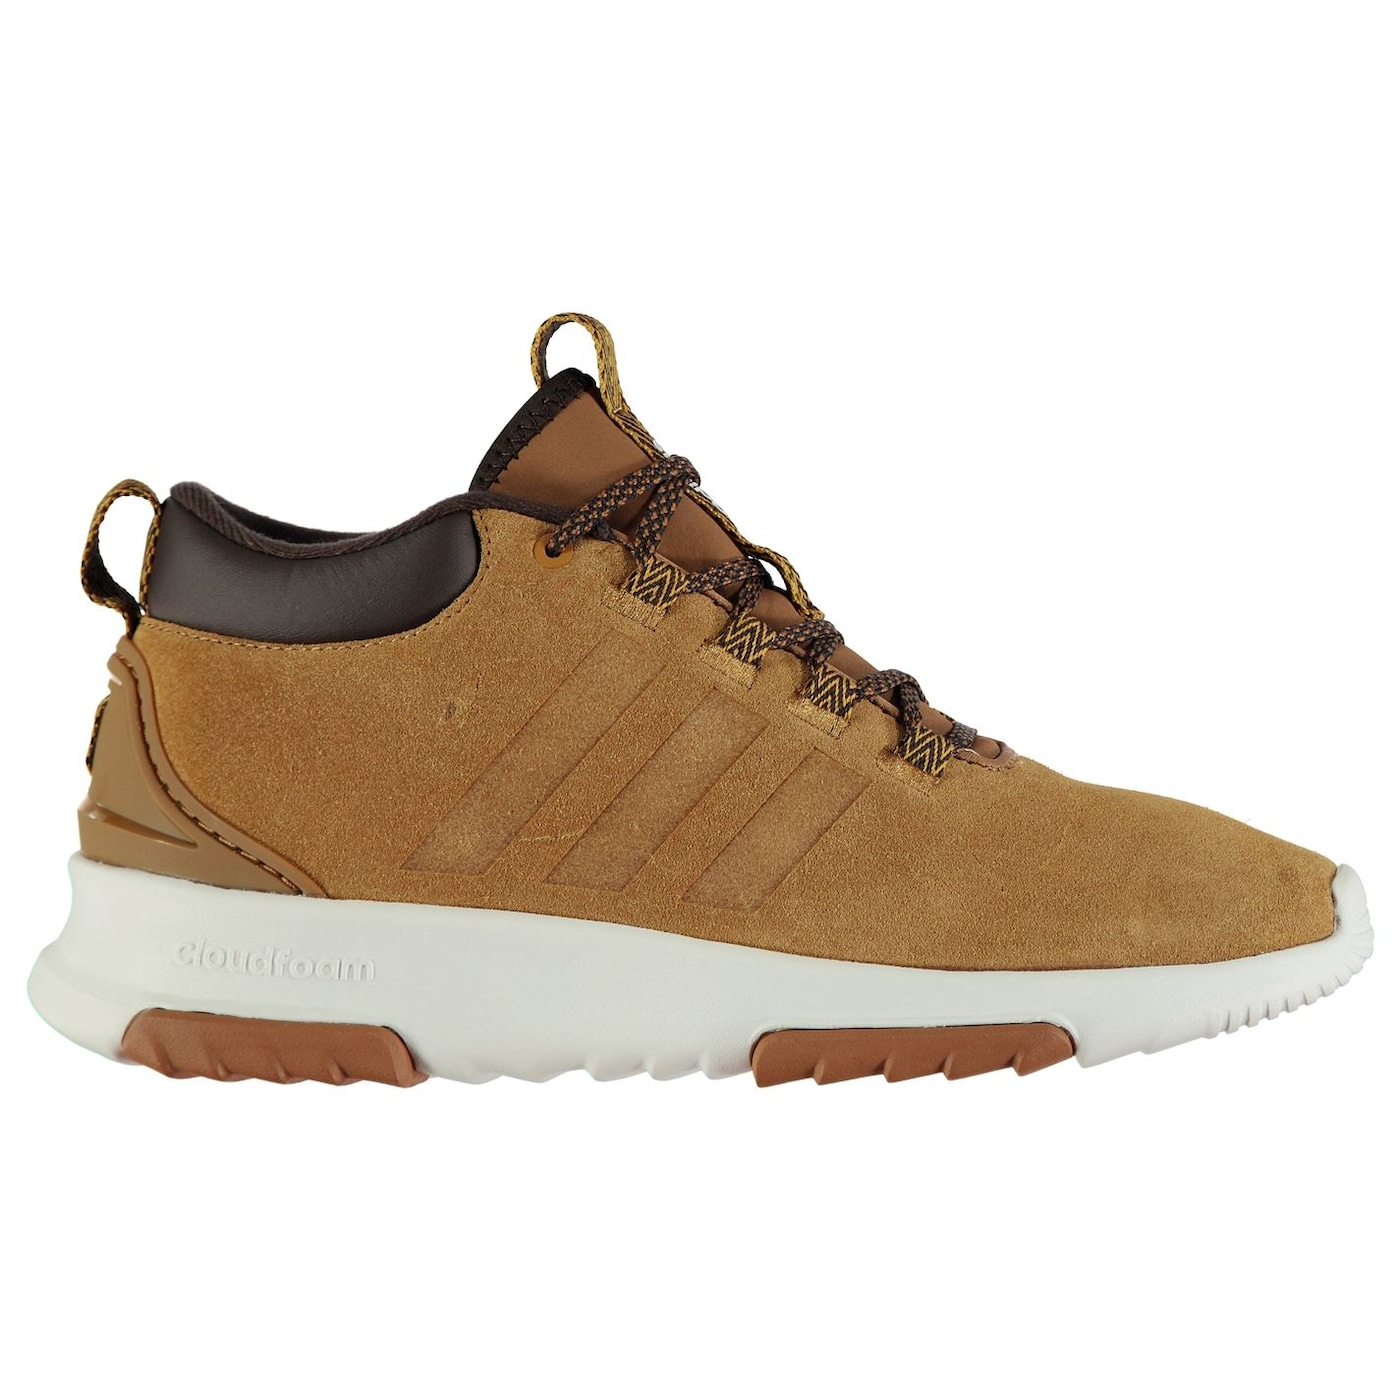 Adidas CF Racer Mid Suede Mens Trainers